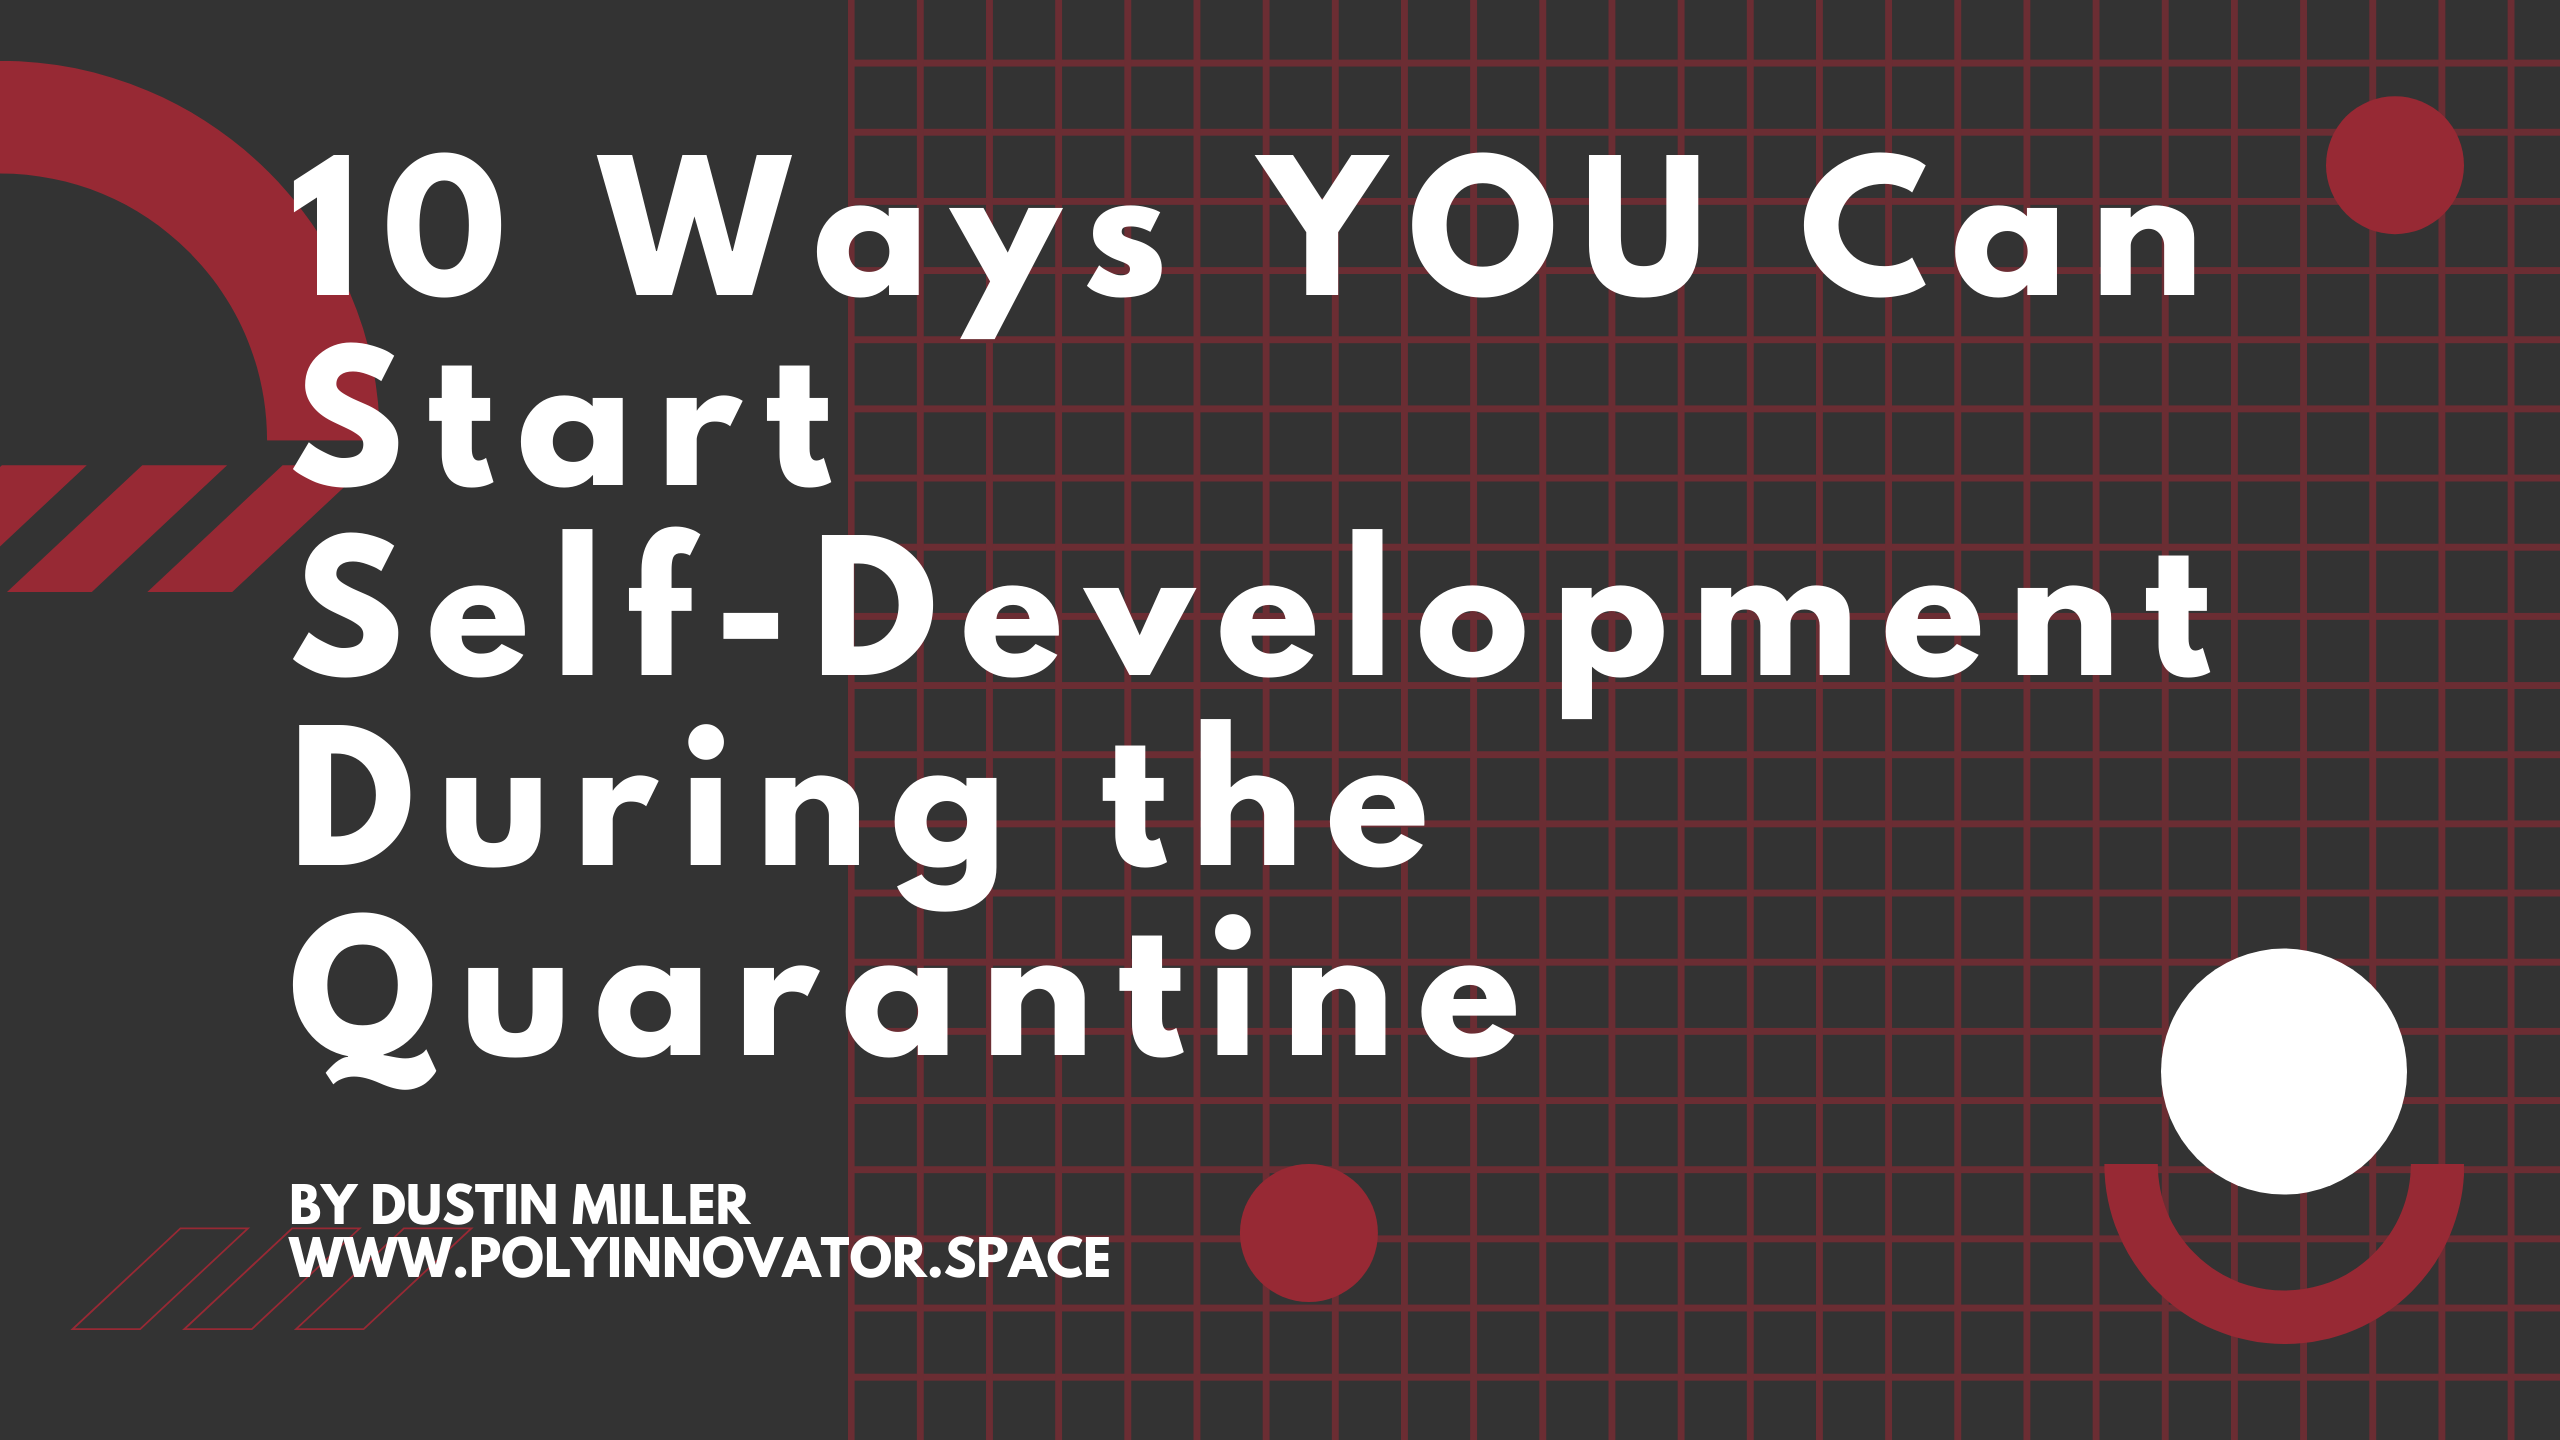 10 Ways YOU Can Start Self-Development During the Quarantine